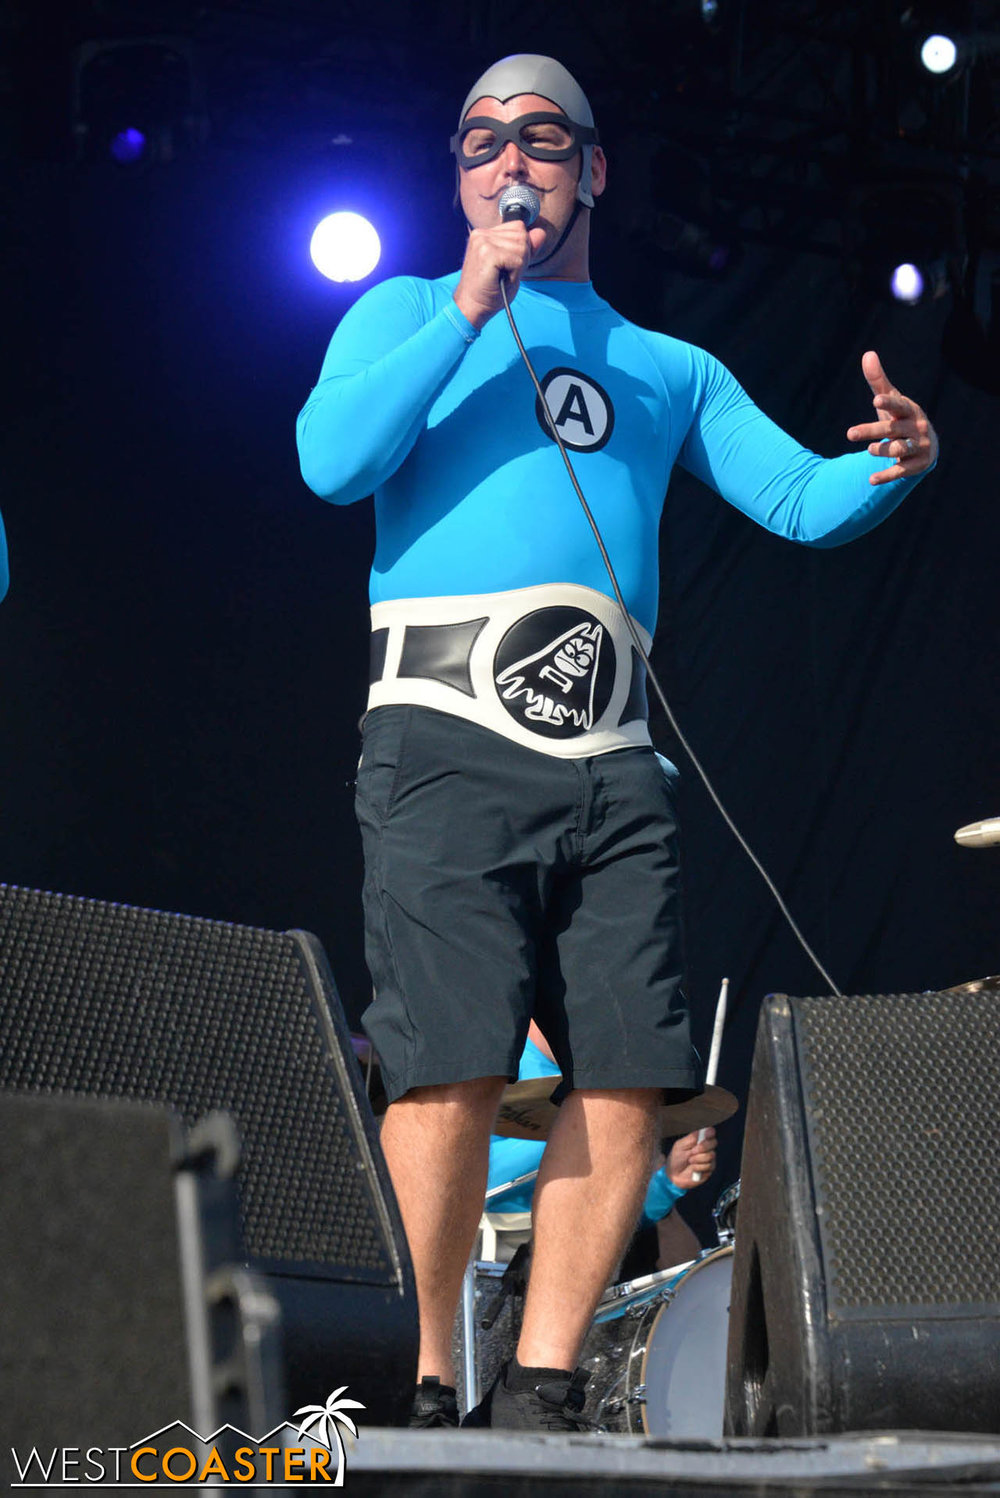 B2tB-18_0504-D-Music-3-Aquabats-0026.jpg